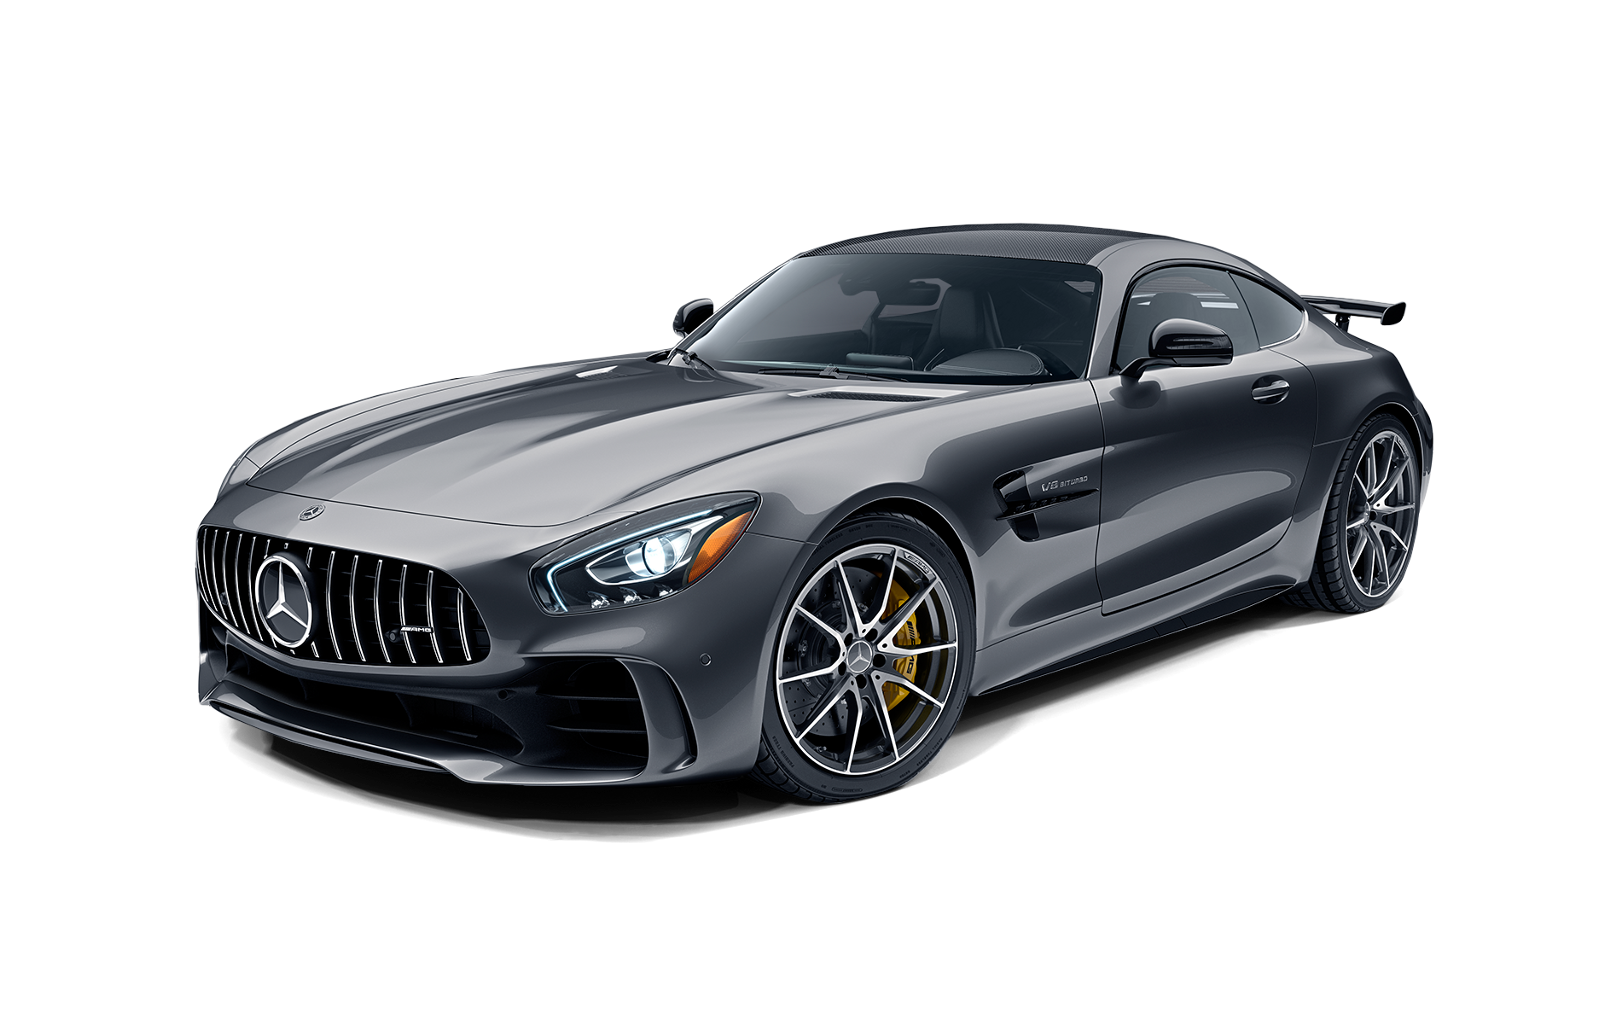 Mercedes drawing sports car. Benz amg gt grey